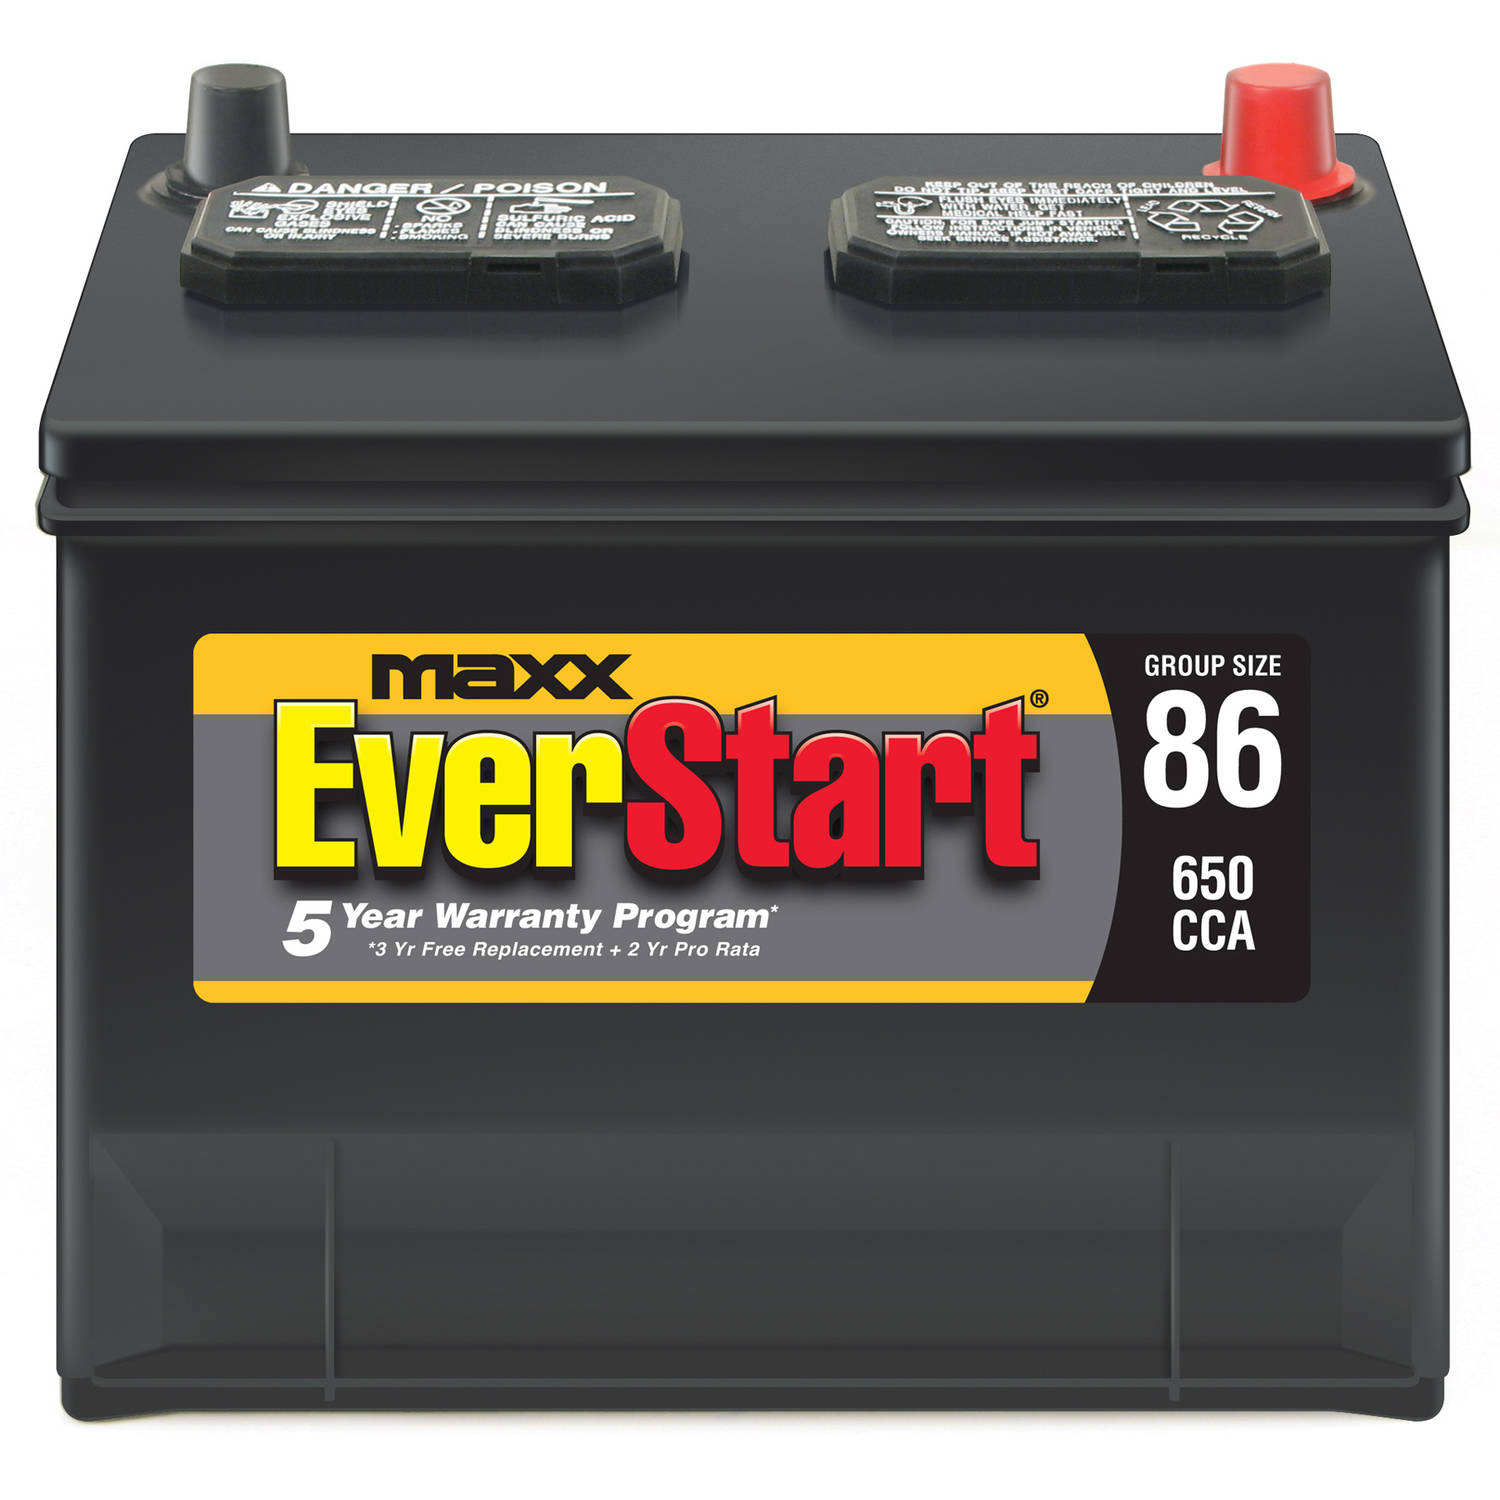 EverStart Maxx Lead Acid Automotive Battery, Group 86